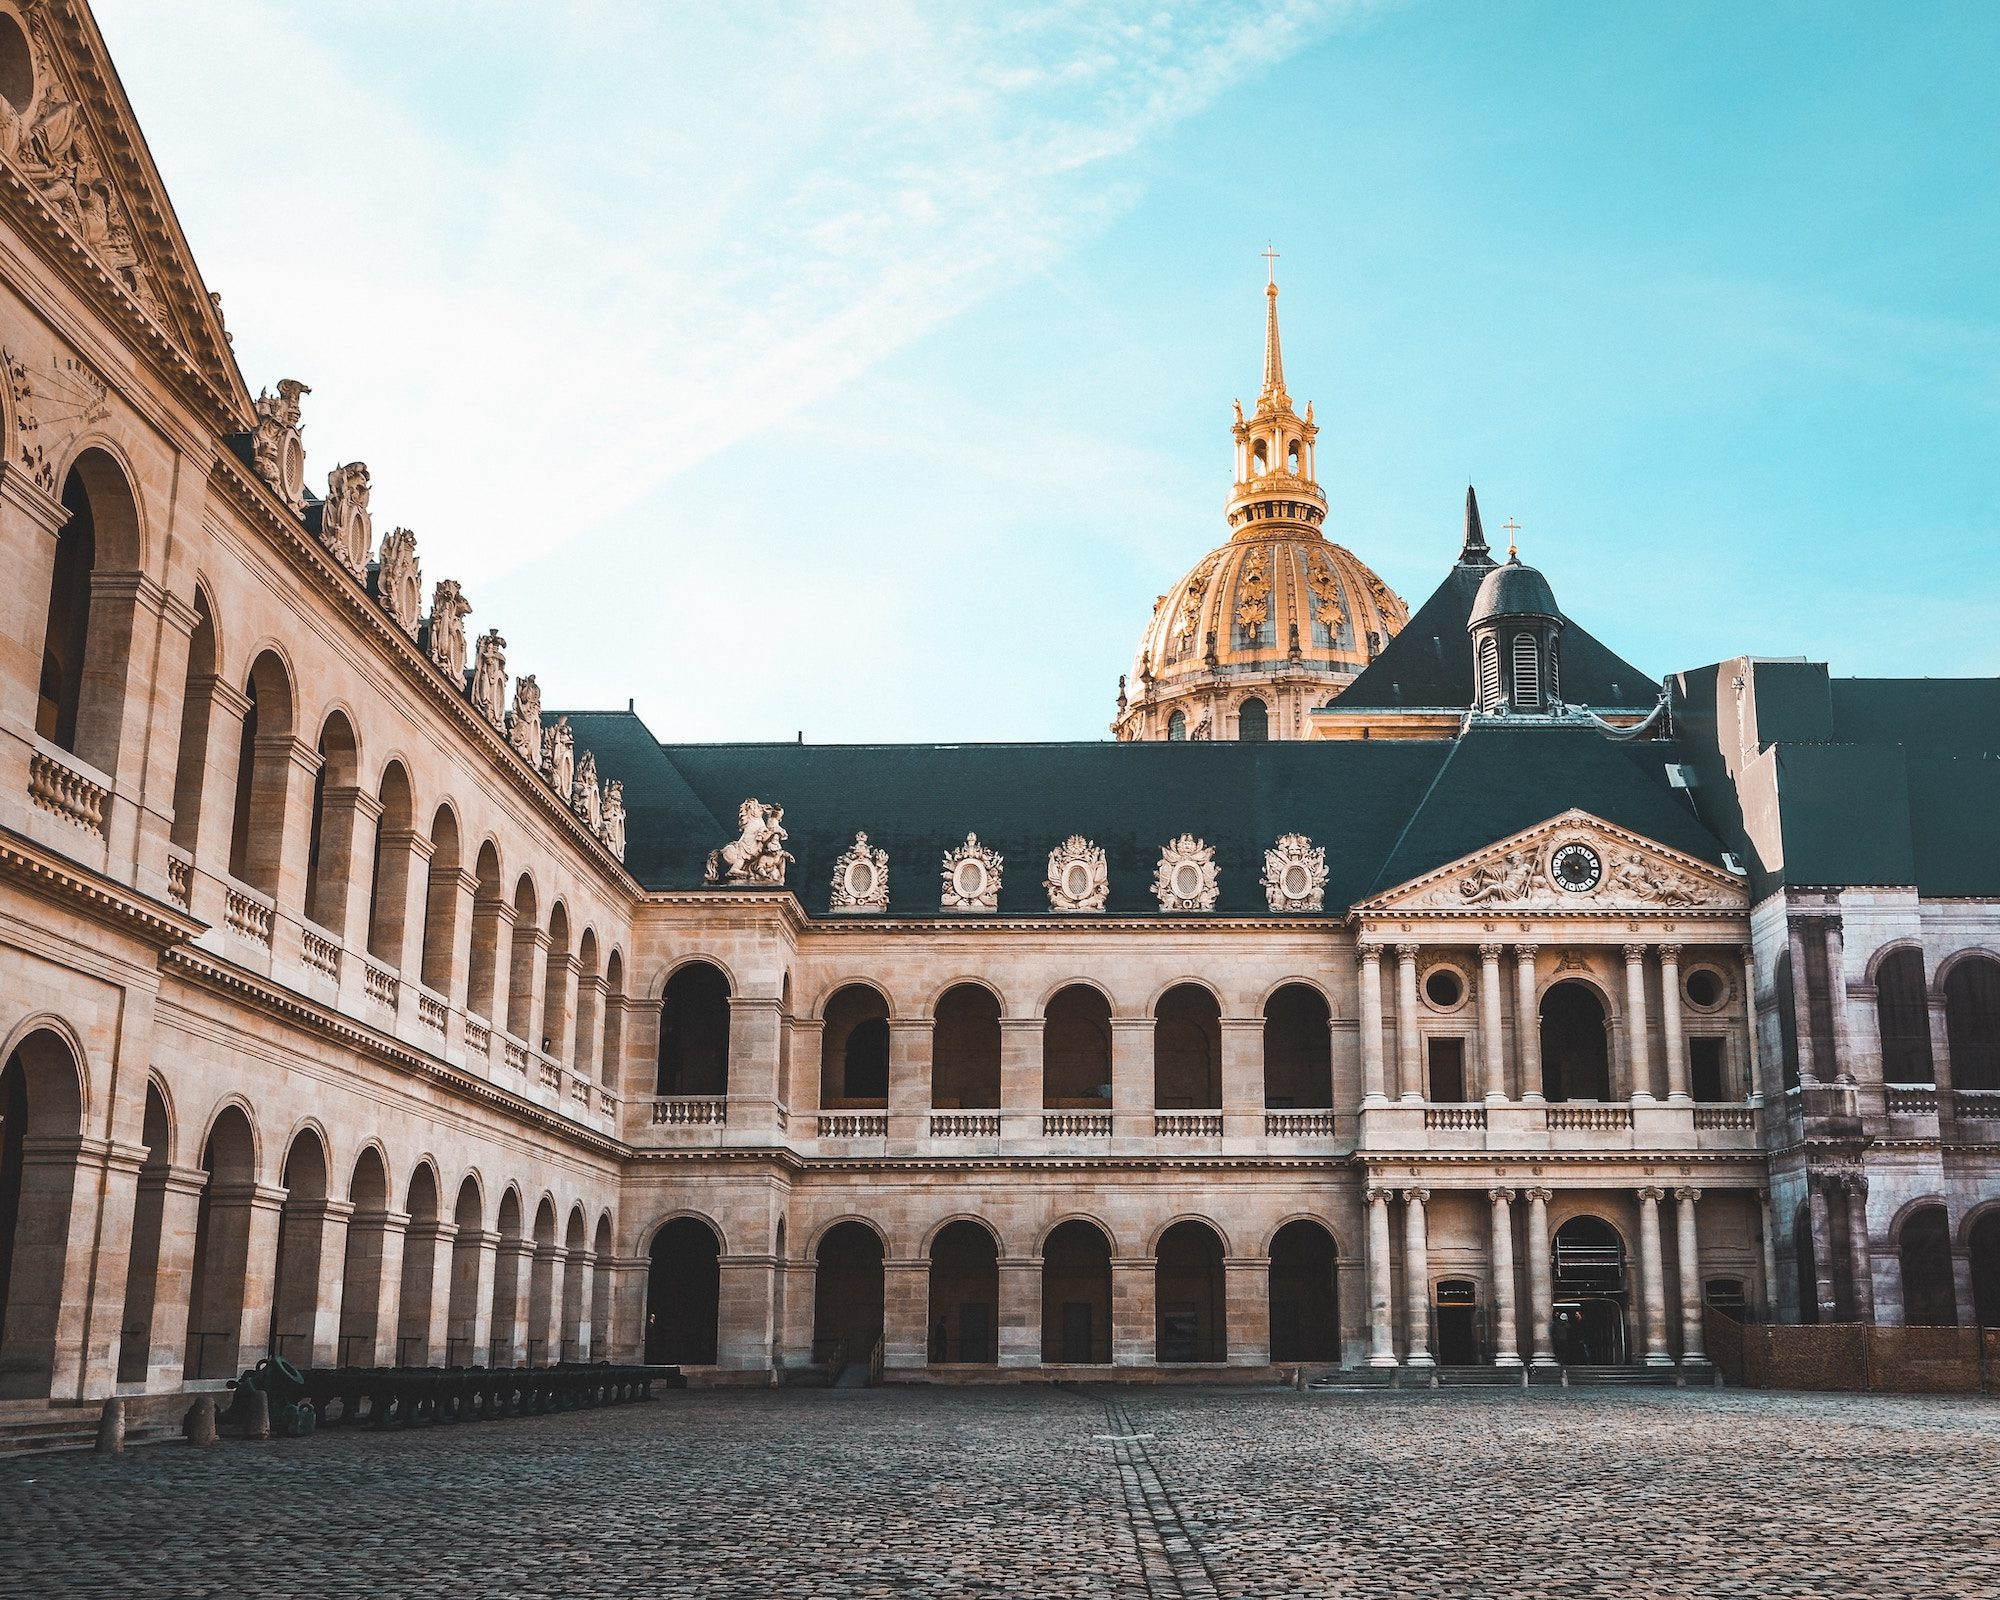 The interior cobblestone courtyard at the Invalides, with the gold dome sticking out the top.